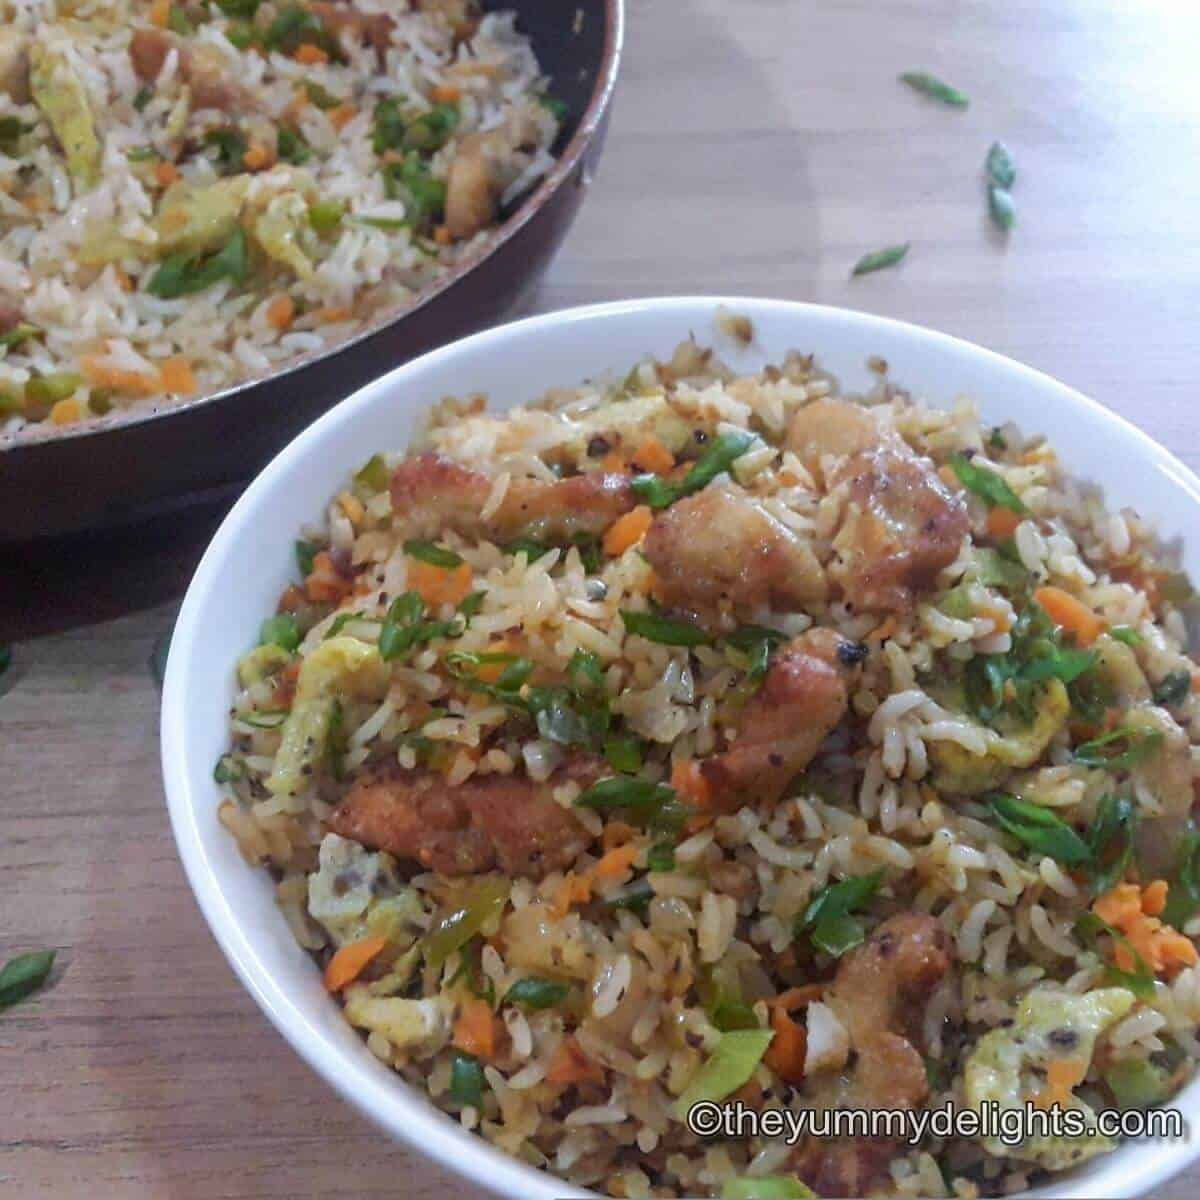 Chinese chicken fried rice served in a white bowl. Garnished with some spring onion greens.